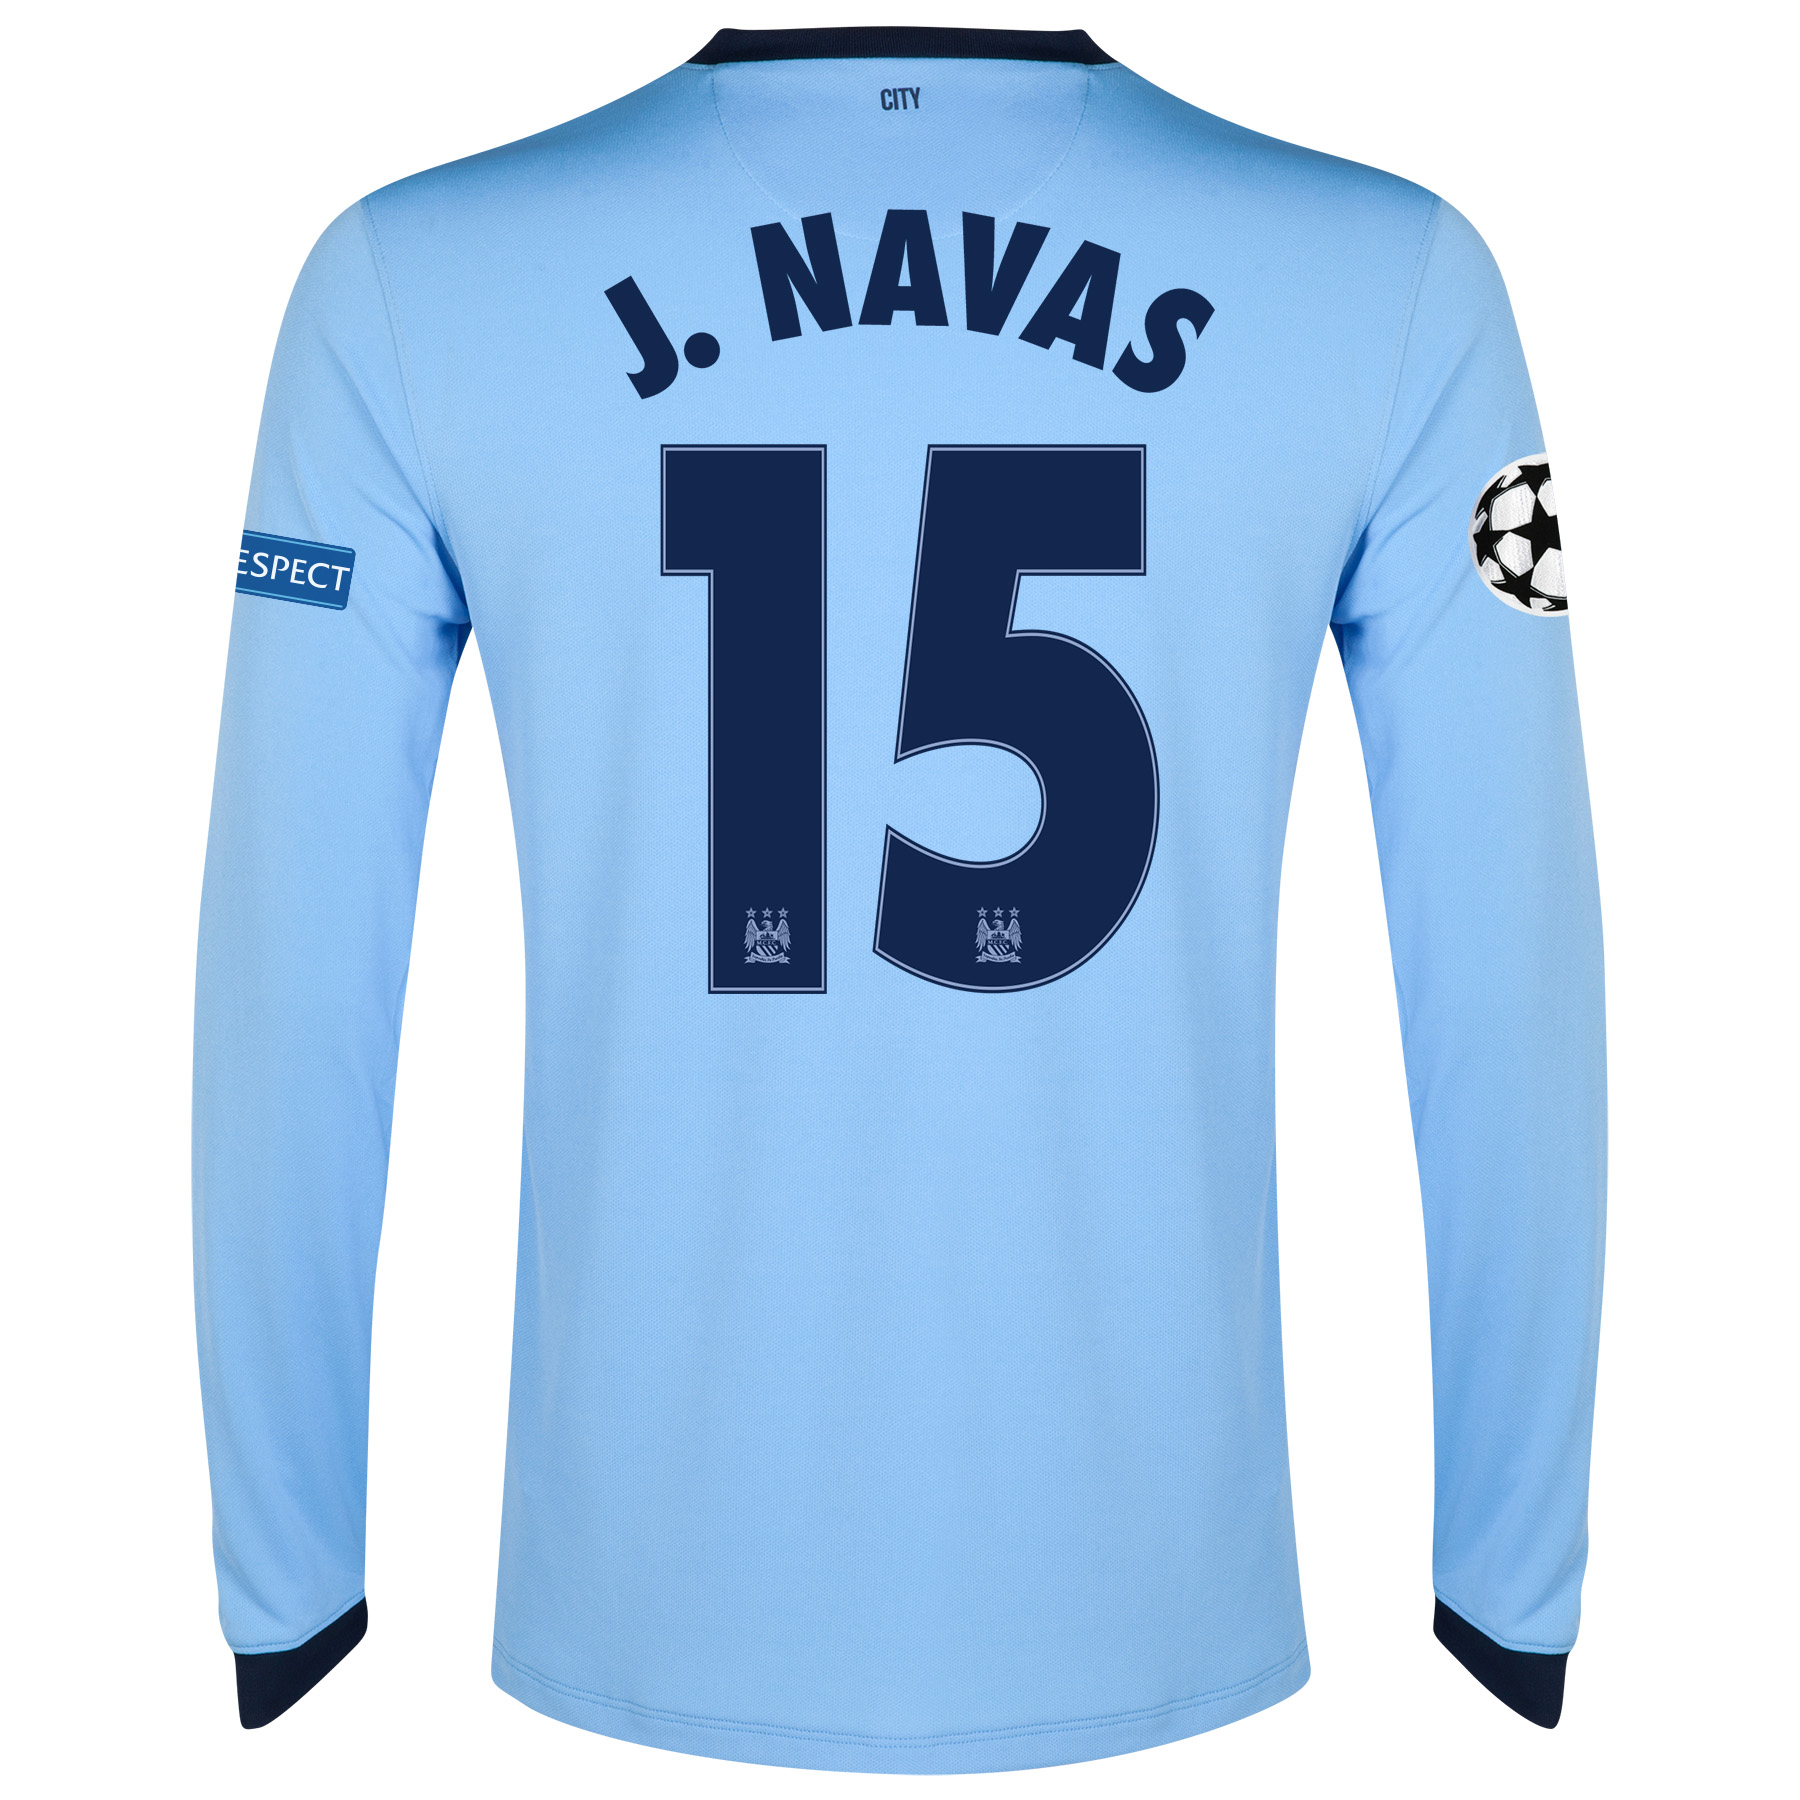 Manchester City UEFA Champions League Home Shirt 2014/15 - Long Sleeve Sky Blue with J.Navas 15 printing